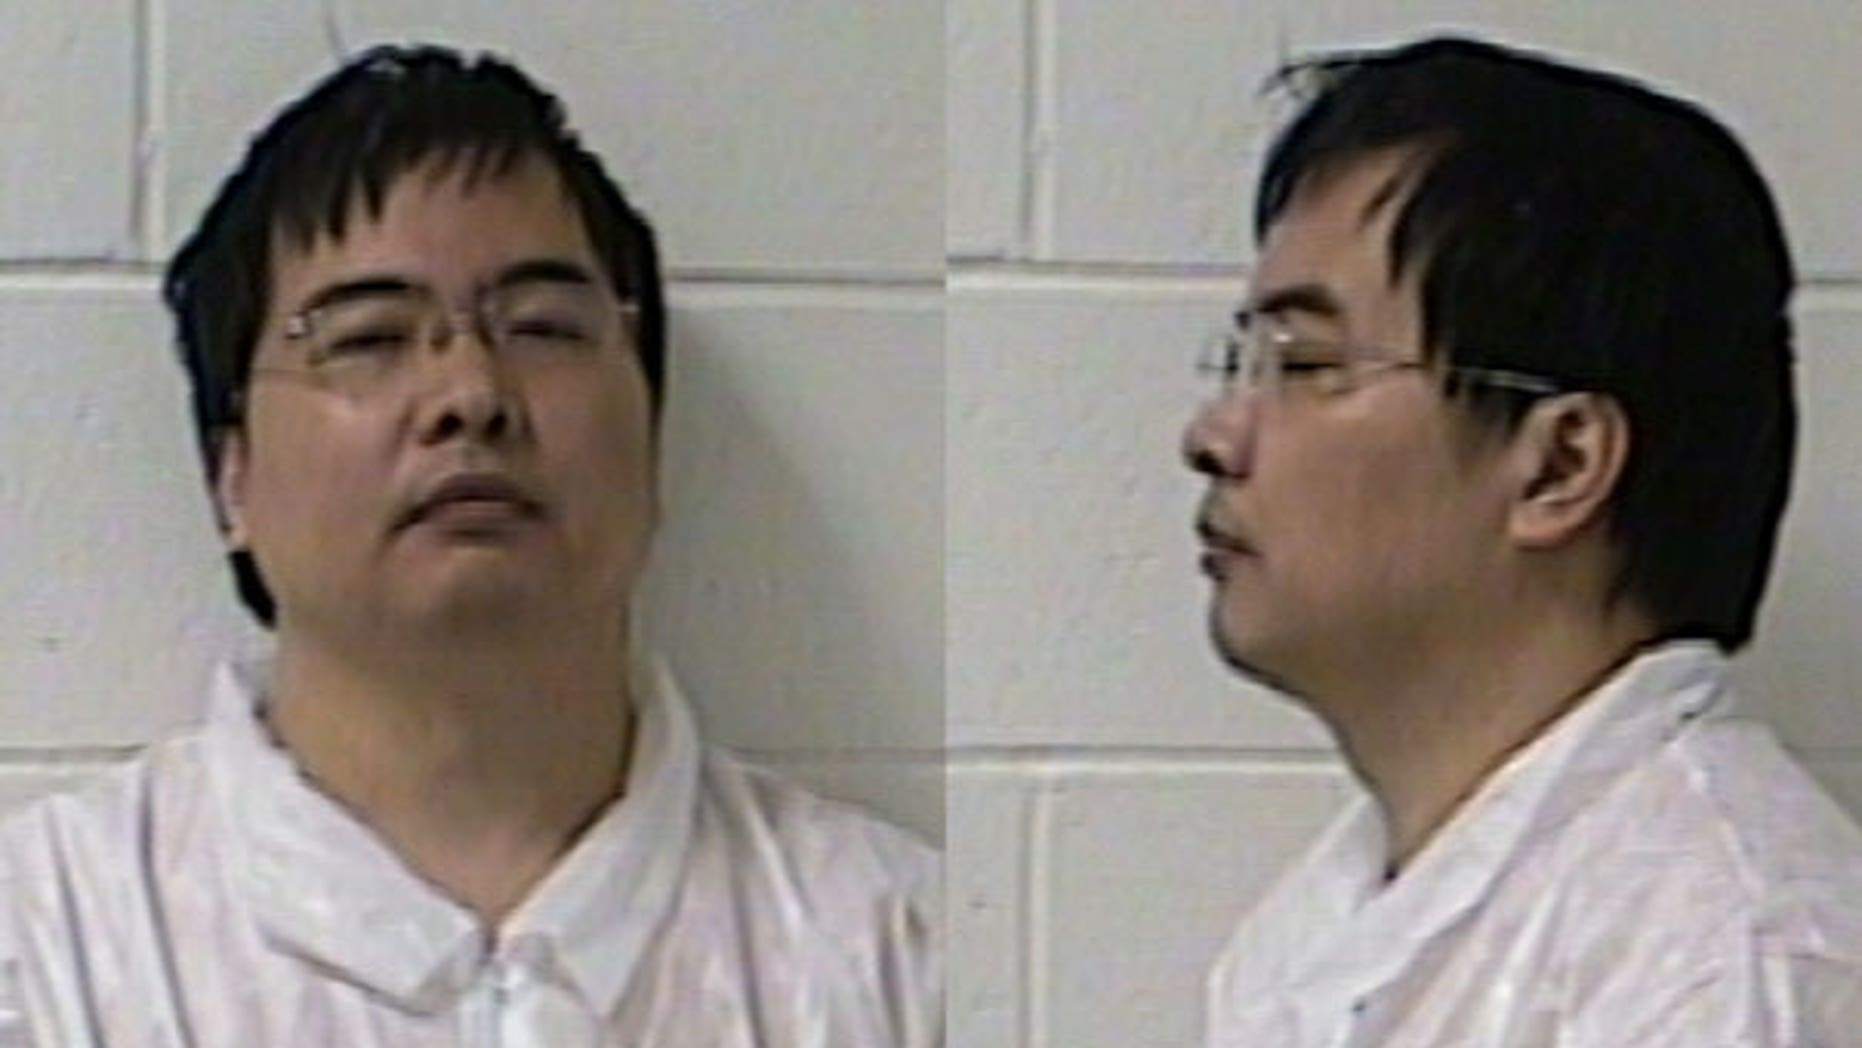 April 26: Lishan Wang is seen in two booking photos. Branford police say Wang, a citizen of China, is charged with murder, attempted murder and firearms offenses in the fatal shooting of Vajinder Toor outside Toor's home in Branford, Conn.